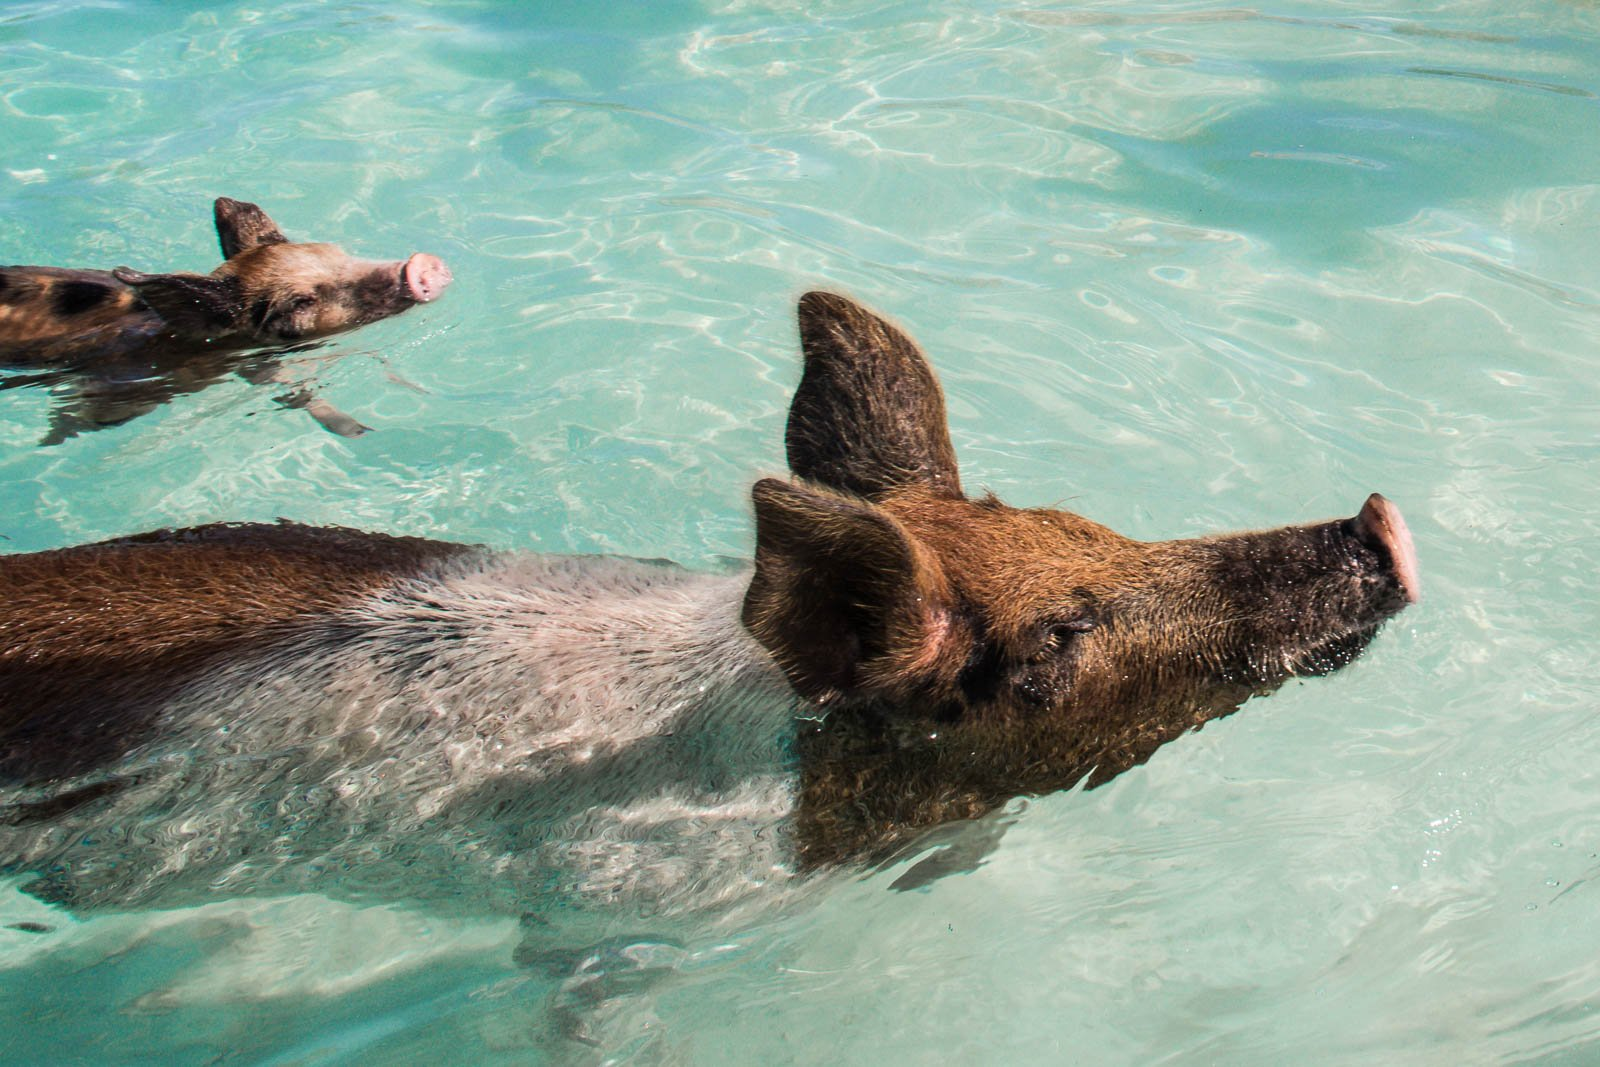 Taking a Bahamas day trip is among the most relaxing things to do in Orlando Florida. See the Bahamas swimming pigs and return to Orlando the same night.